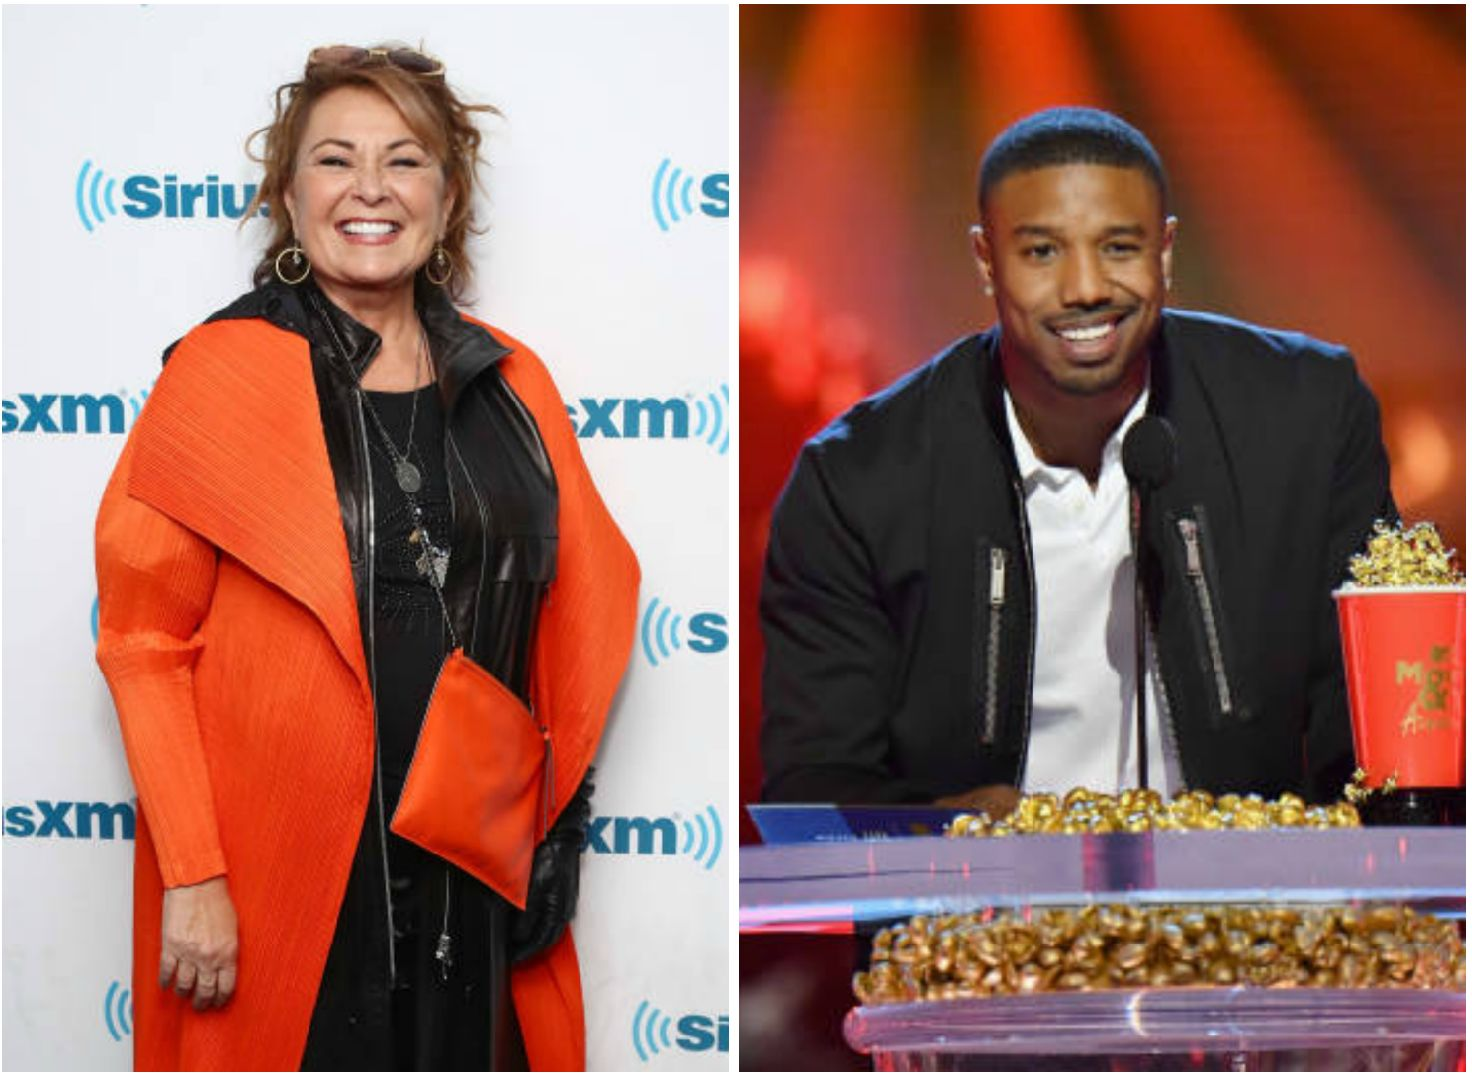 Michael B. Jordan 'Shocked' He Won MTV Movie Award's Best Villain Over Roseanne